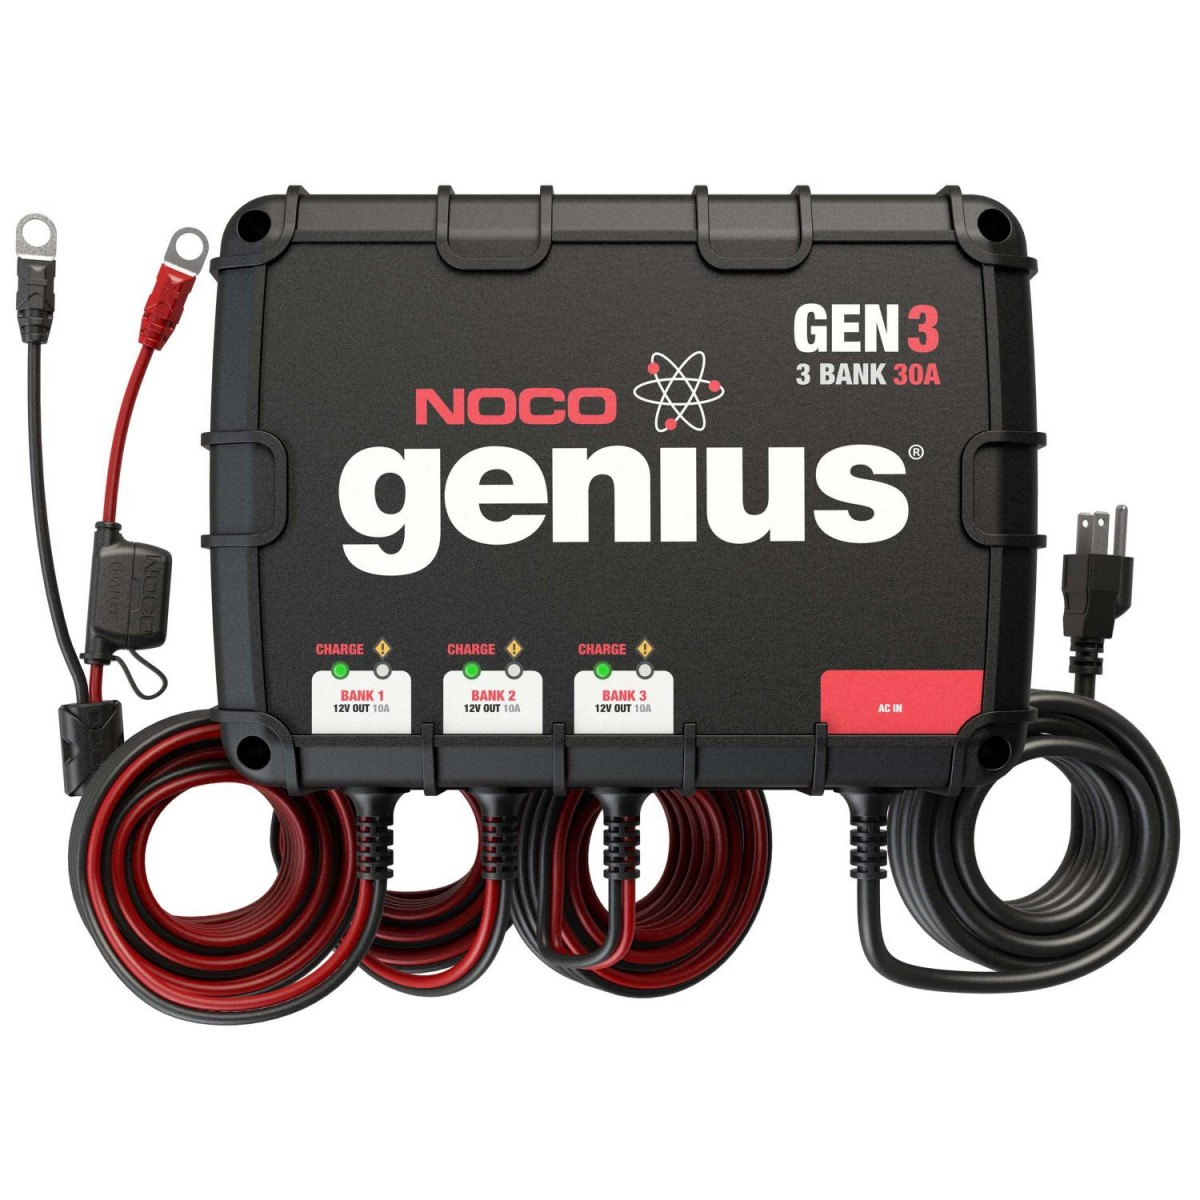 NOCO GEN3 30a 3-bank Onboard Battery Charger